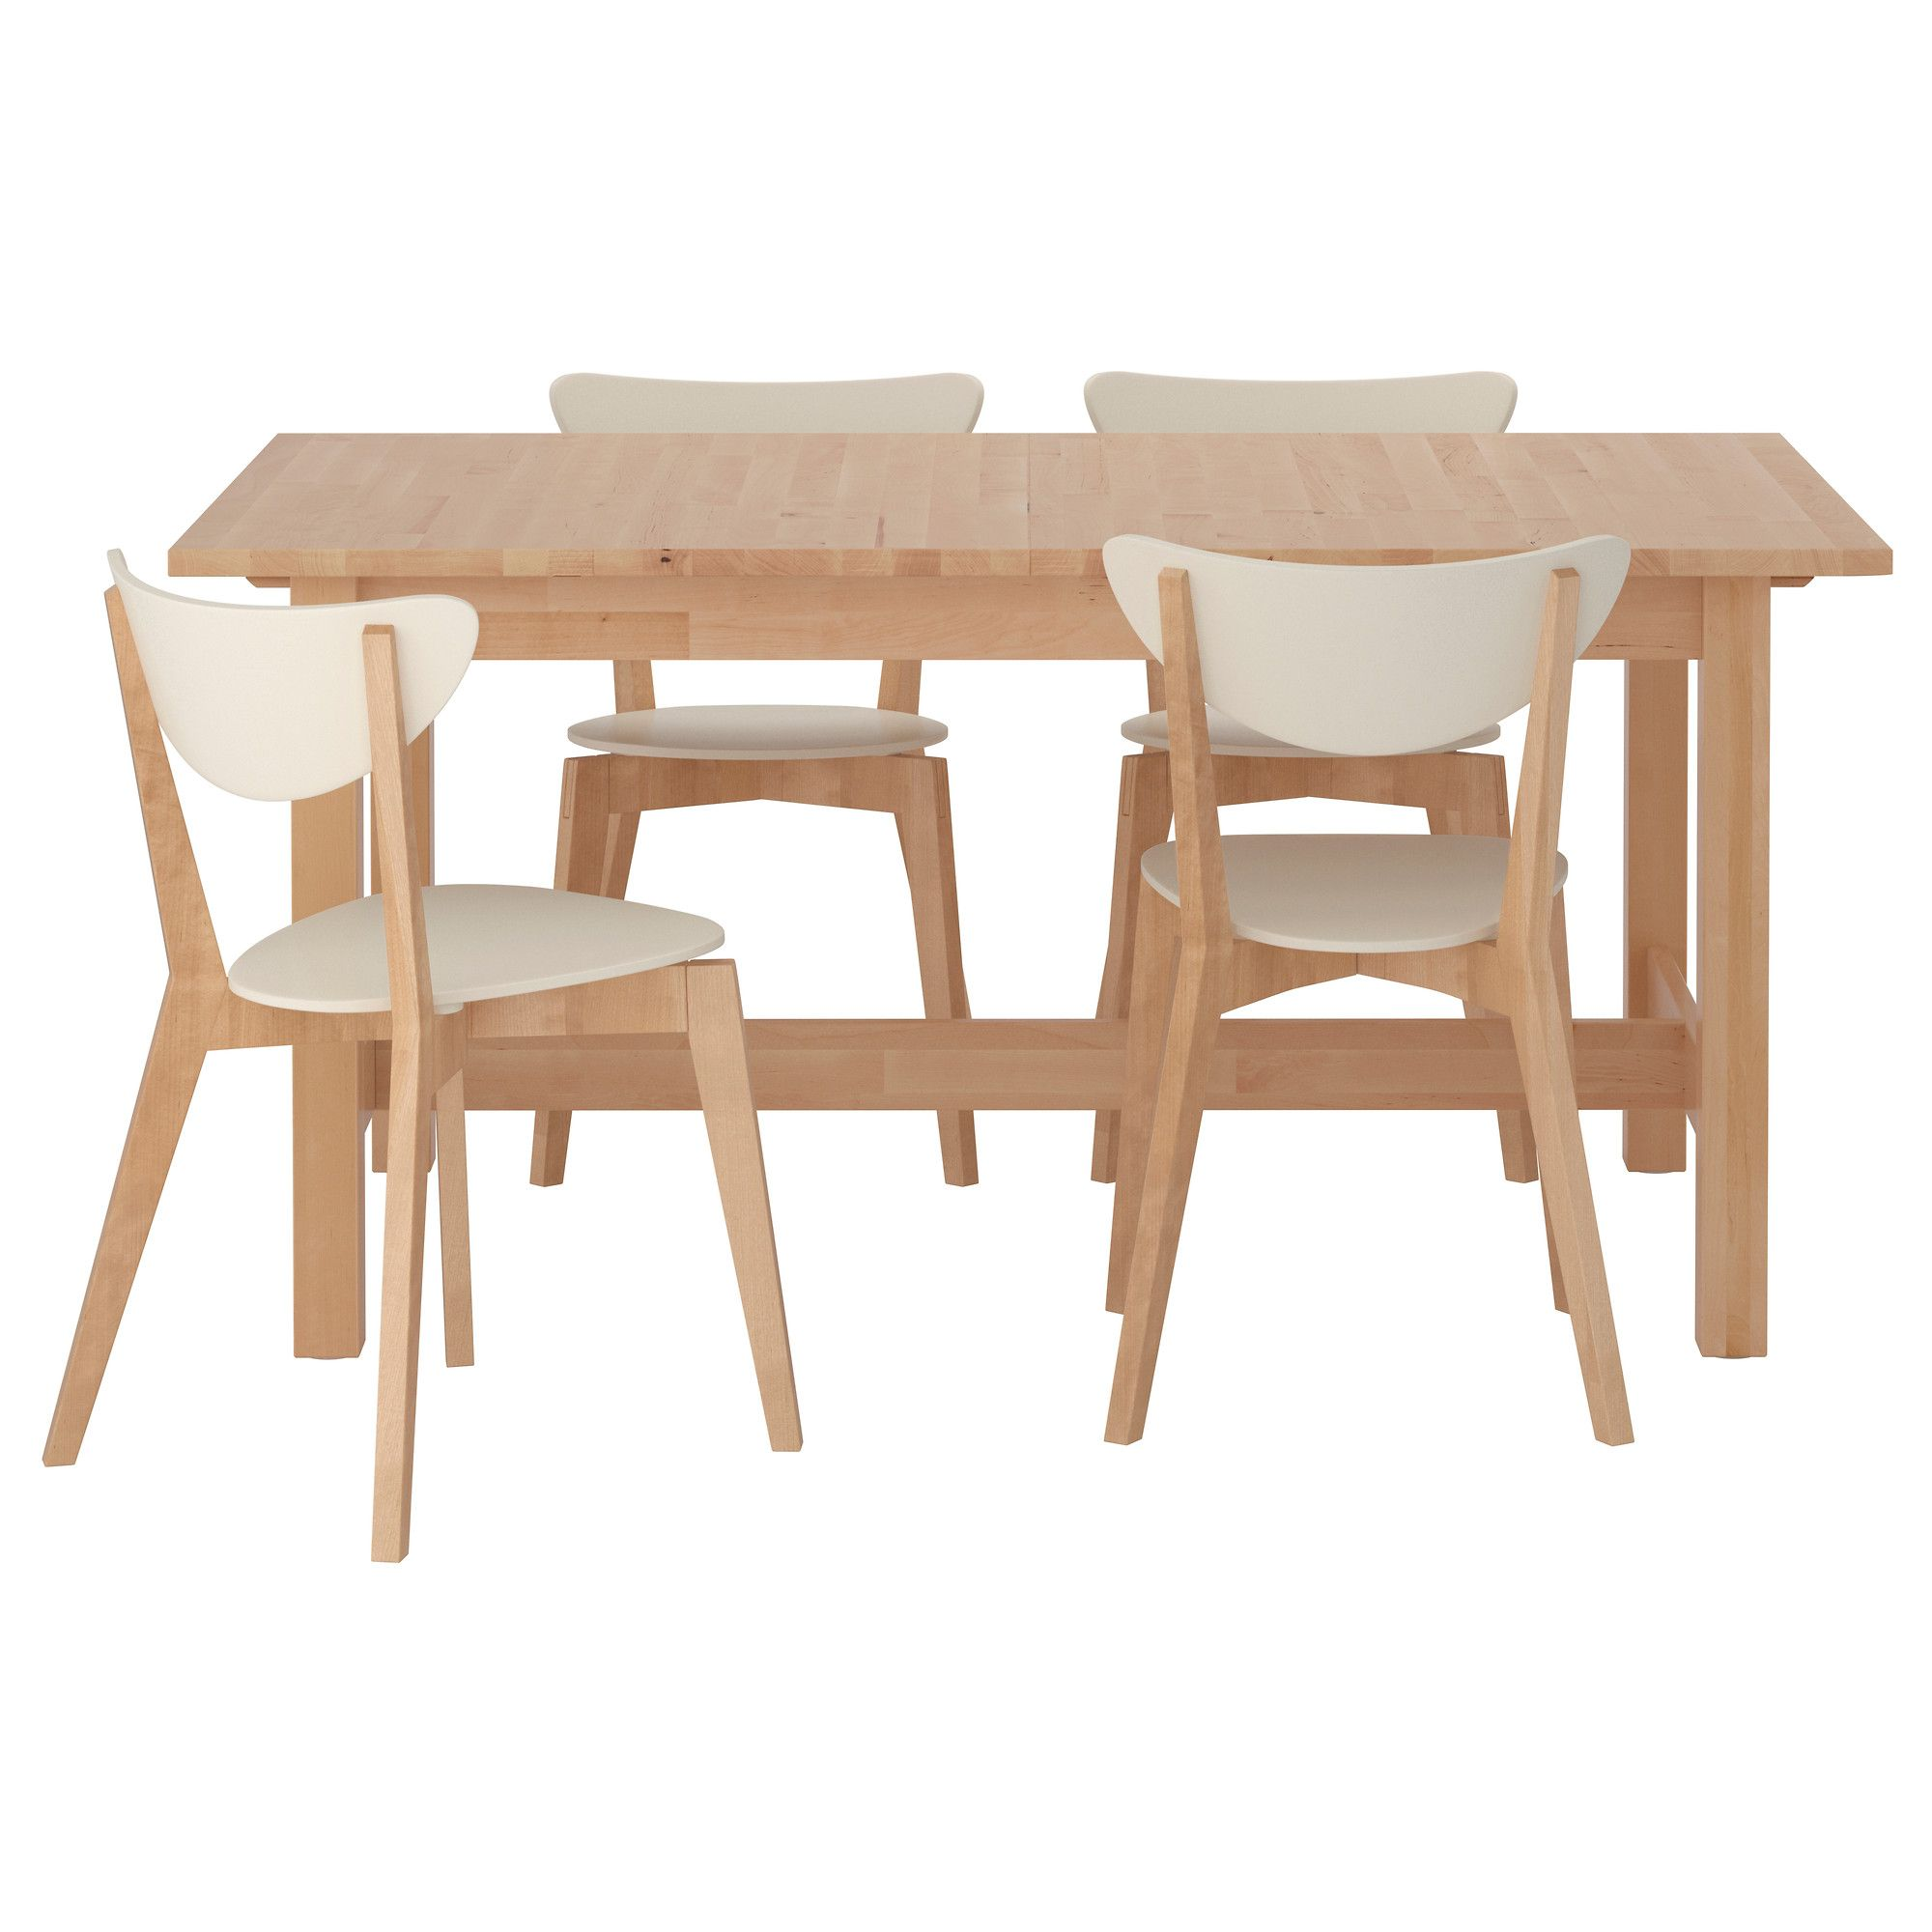 Norden nordmyra table et 4 chaises 319 ikea for the home pinterest - Table et chaises ikea ...